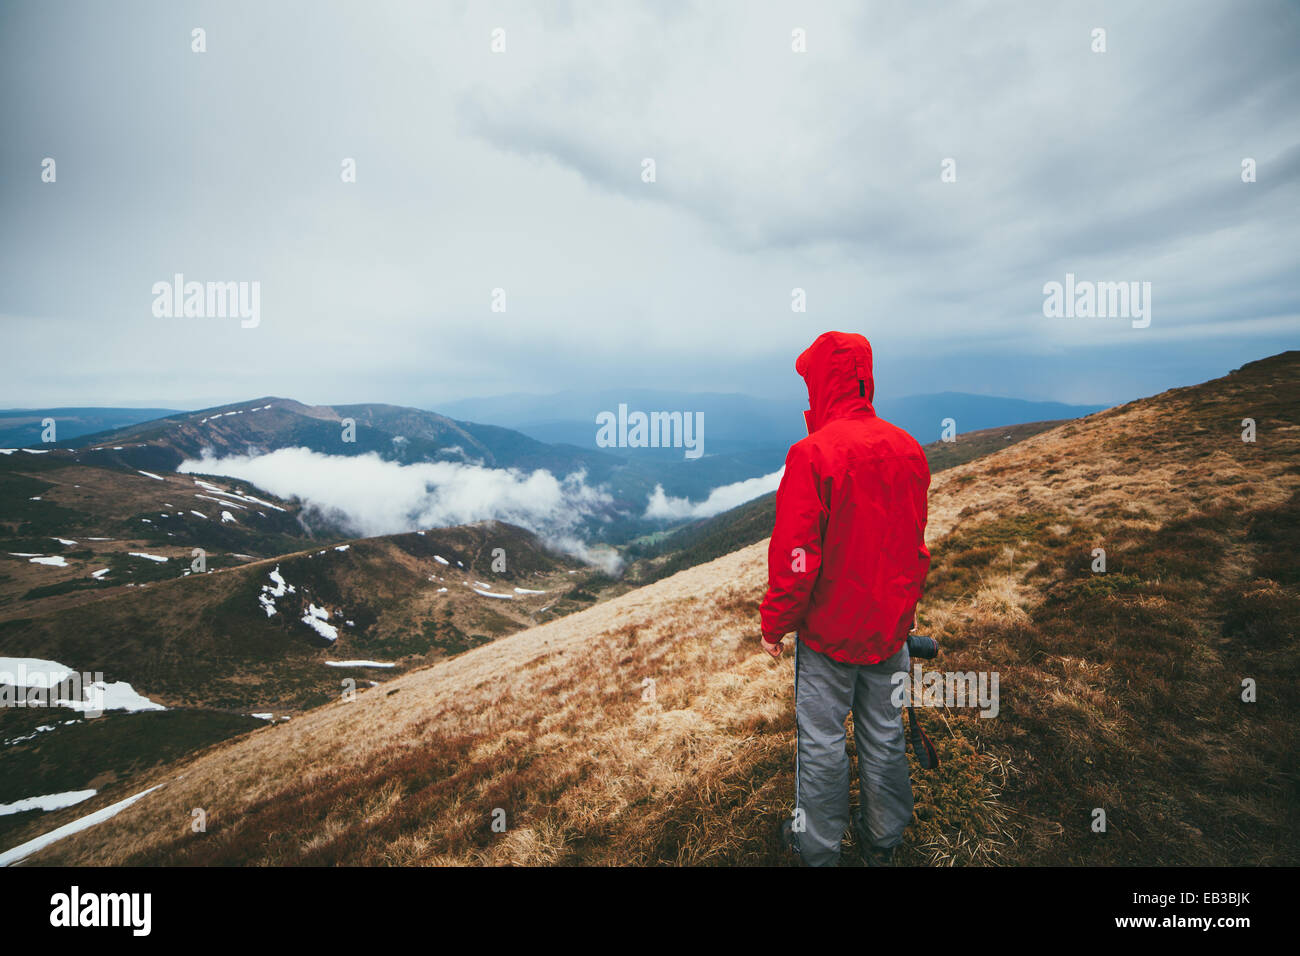 Hiker in mountains Stock Photo